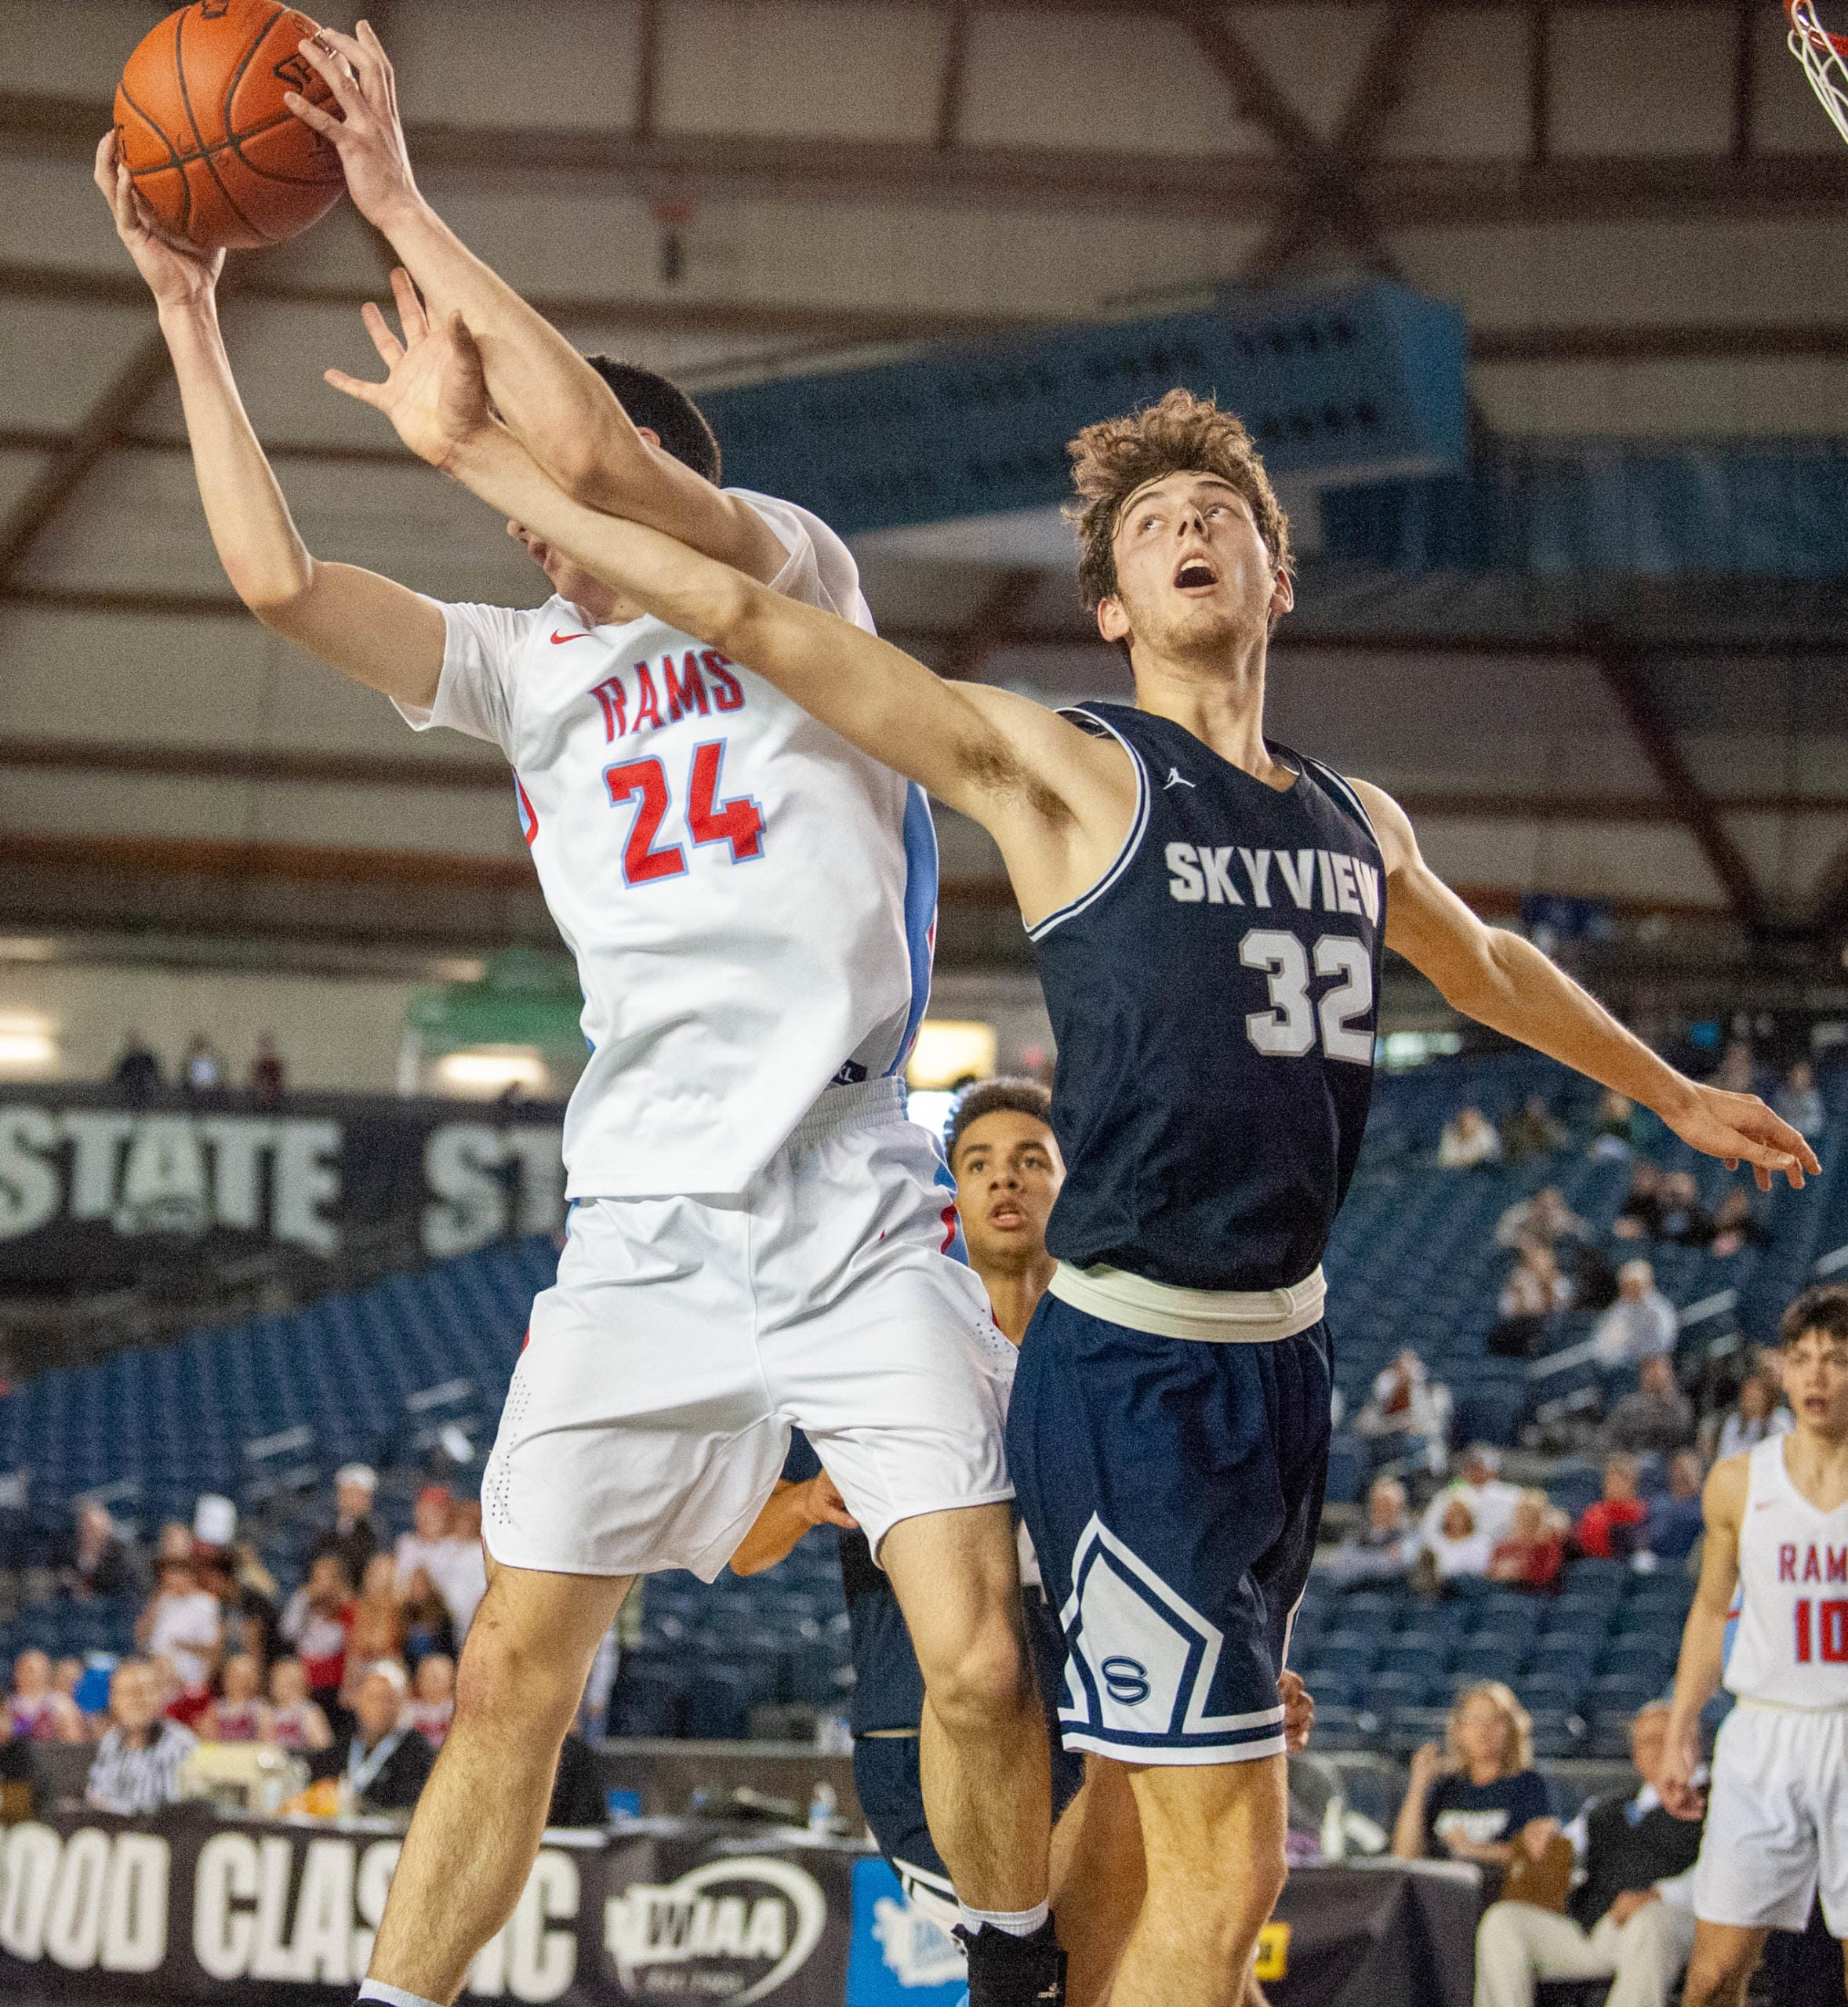 Skyview's Cody McKinney and West Valley's Logan Kinloch fight for a rebound in a 4A State round-of-12 game Wednesday at the Tacoma Dome. (Joshua Hart/The Columbian)